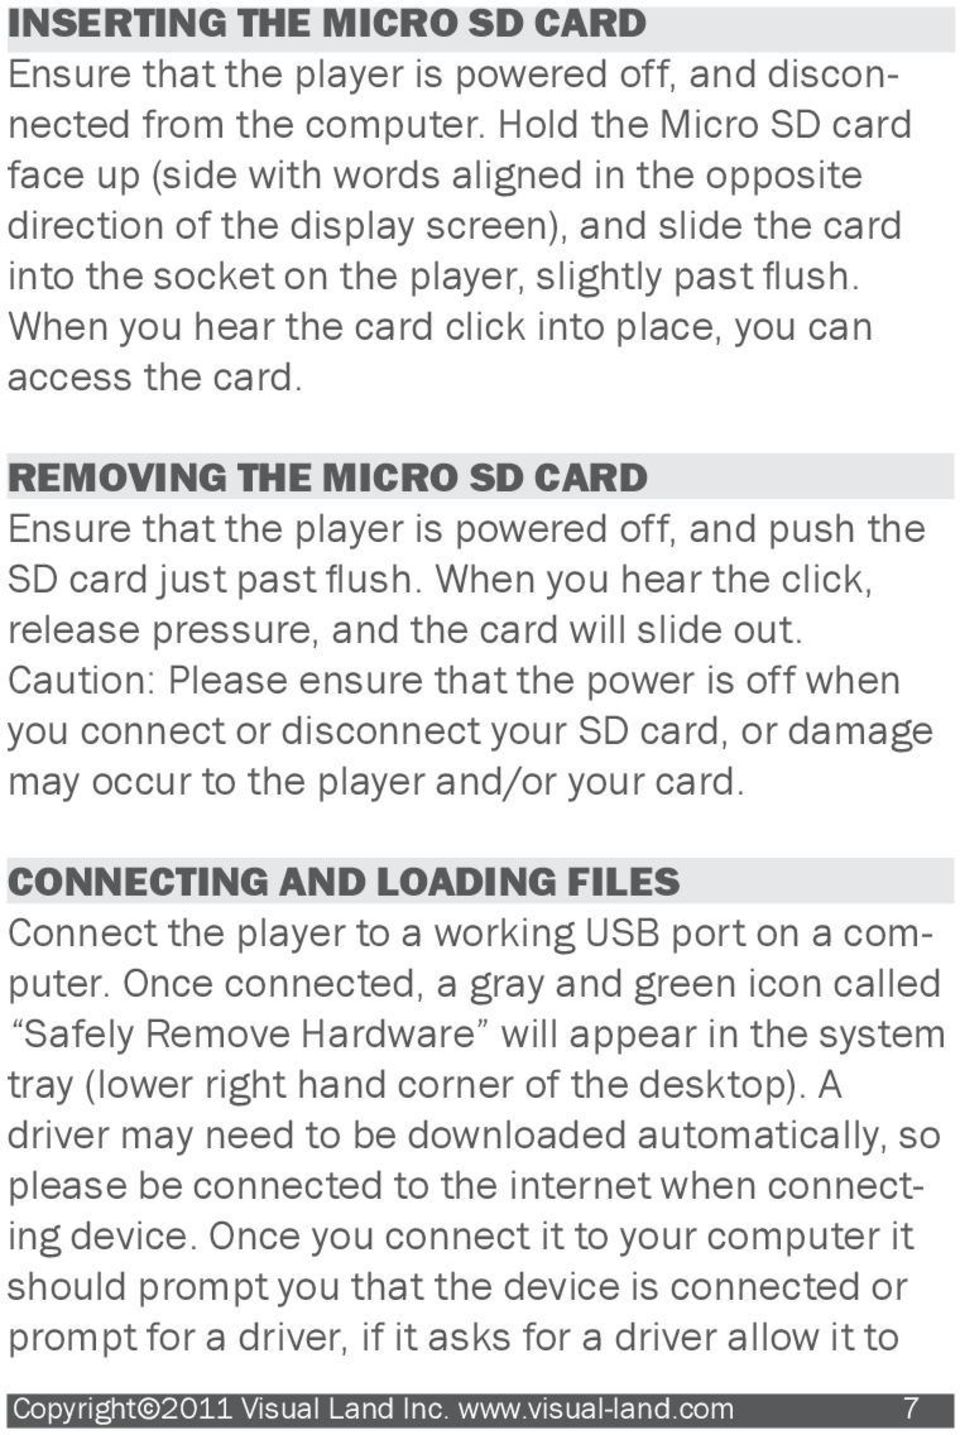 When you hear the card click into place, you can access the card. REMOVING THE MICRO SD CARD Ensure that the player is powered off, and push the SD card just past flush.